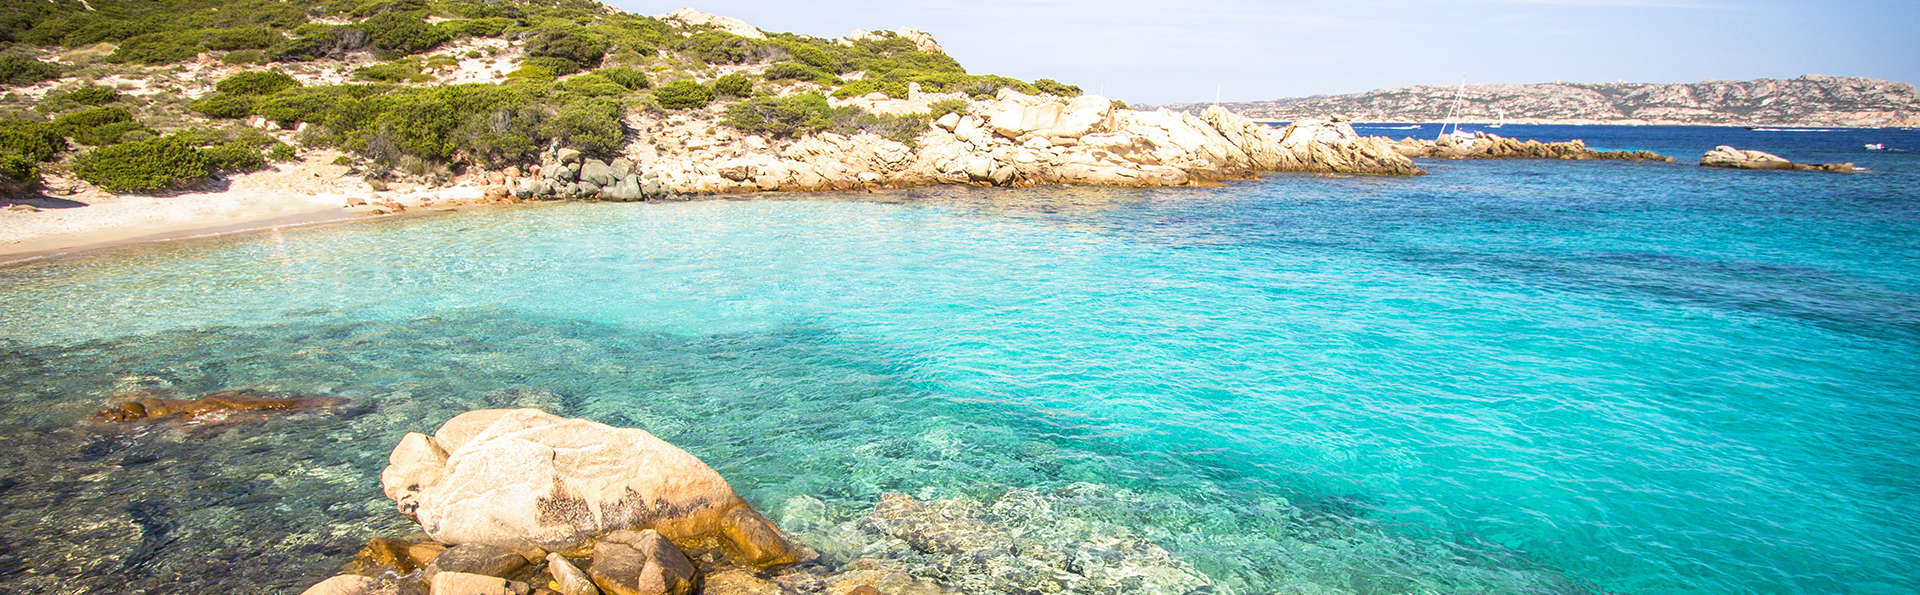 Appartamenti Le Maree - EDIT_LAMADDALENA3.jpg